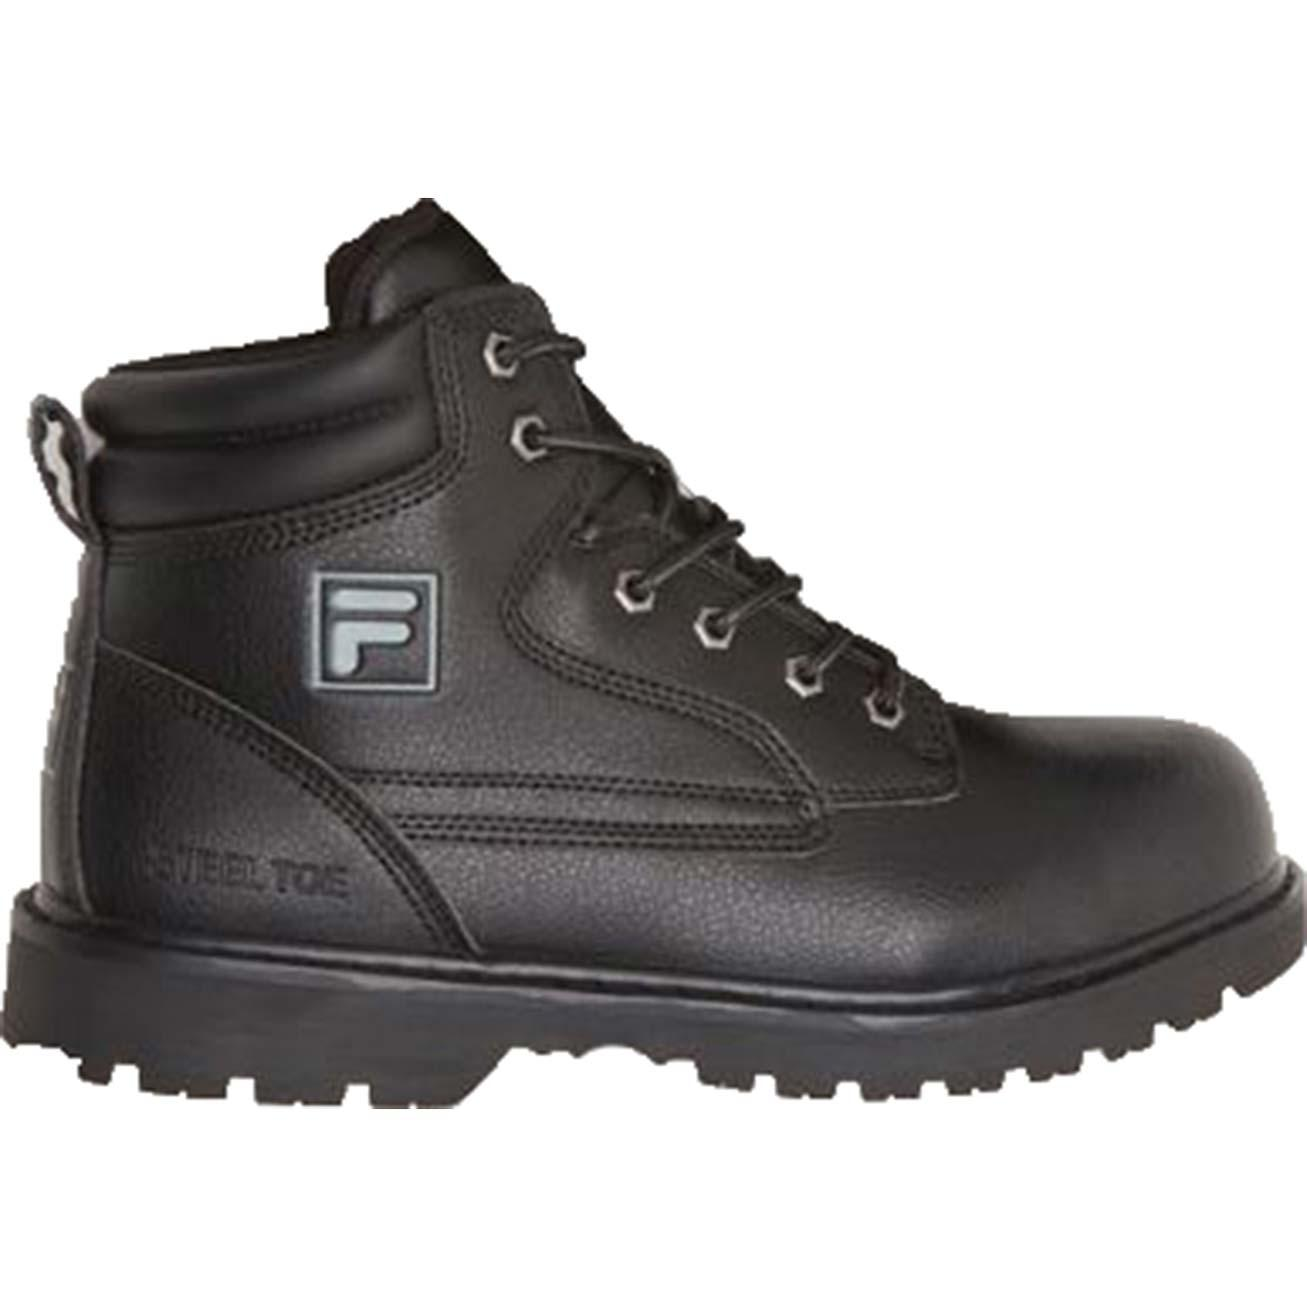 6e1ad04f57 Fila Landing Steel Toe Work Boot